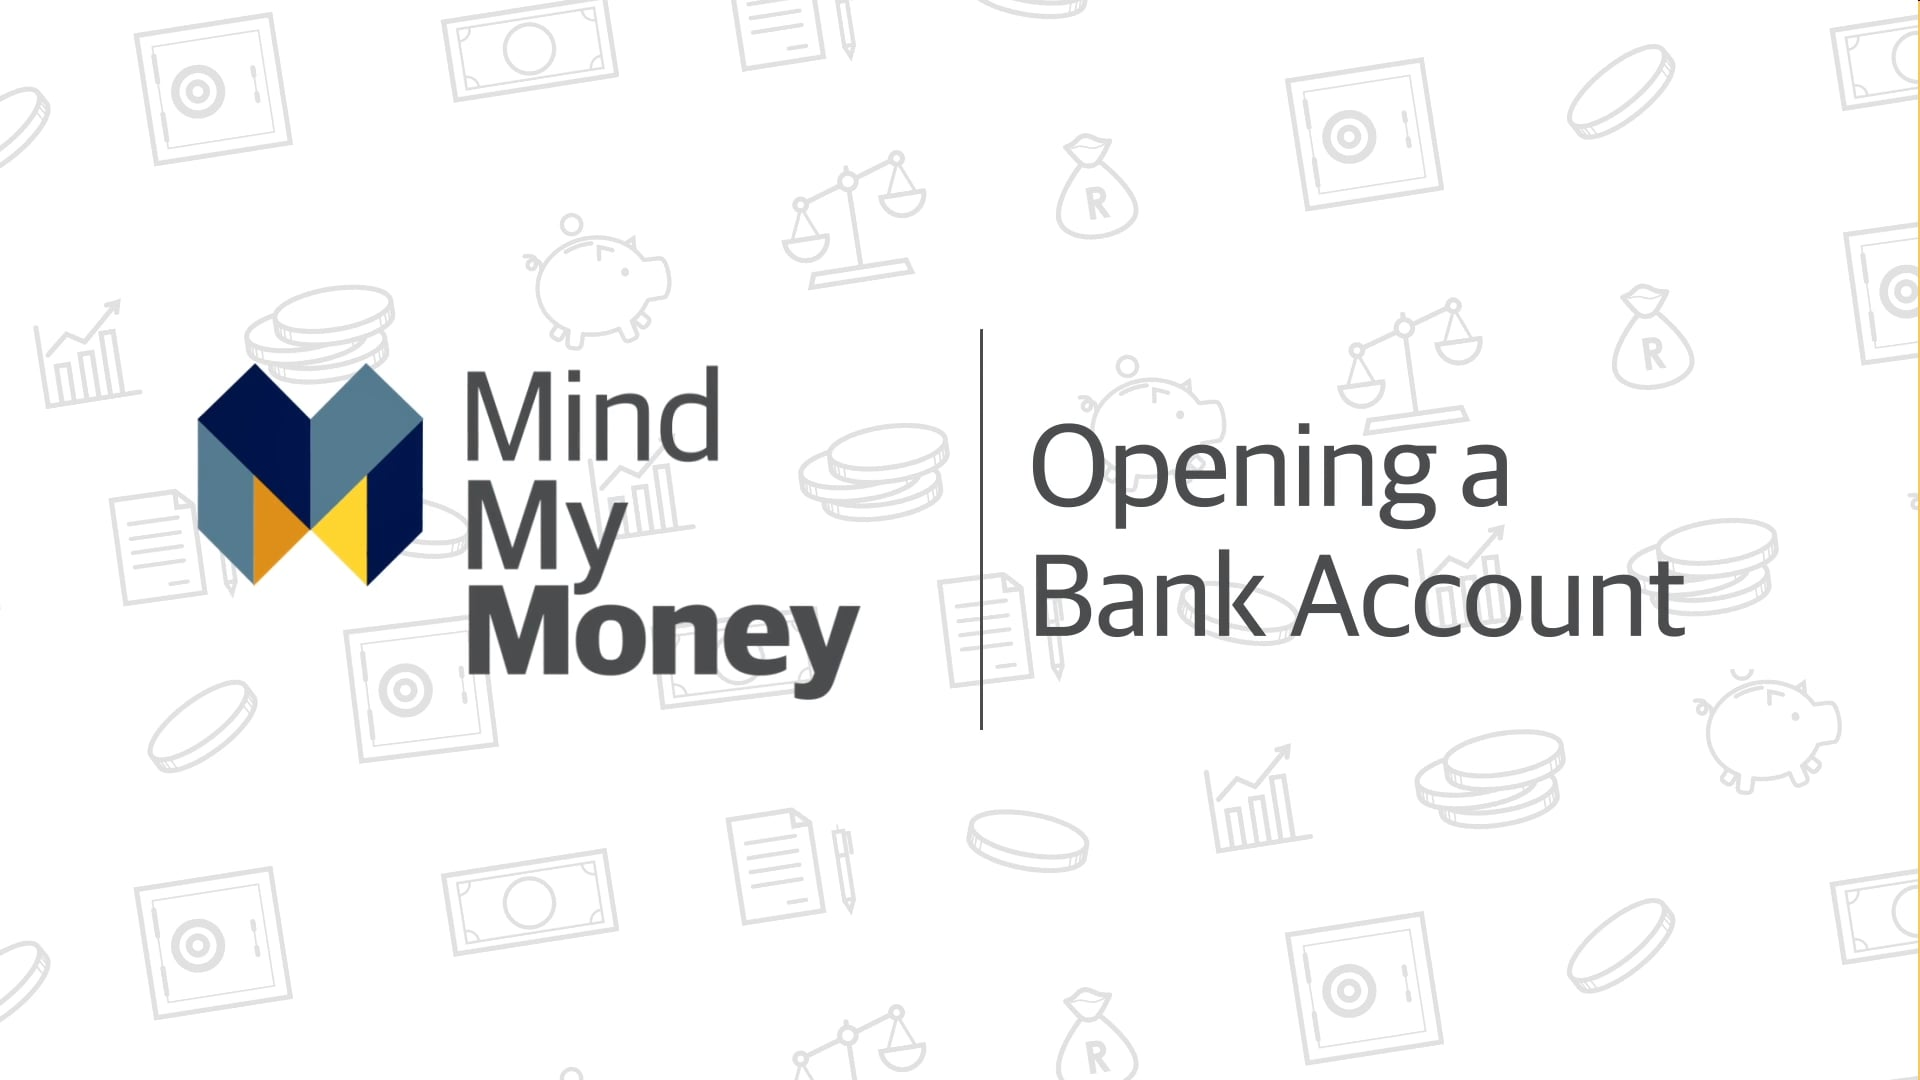 Opening a Bank Account